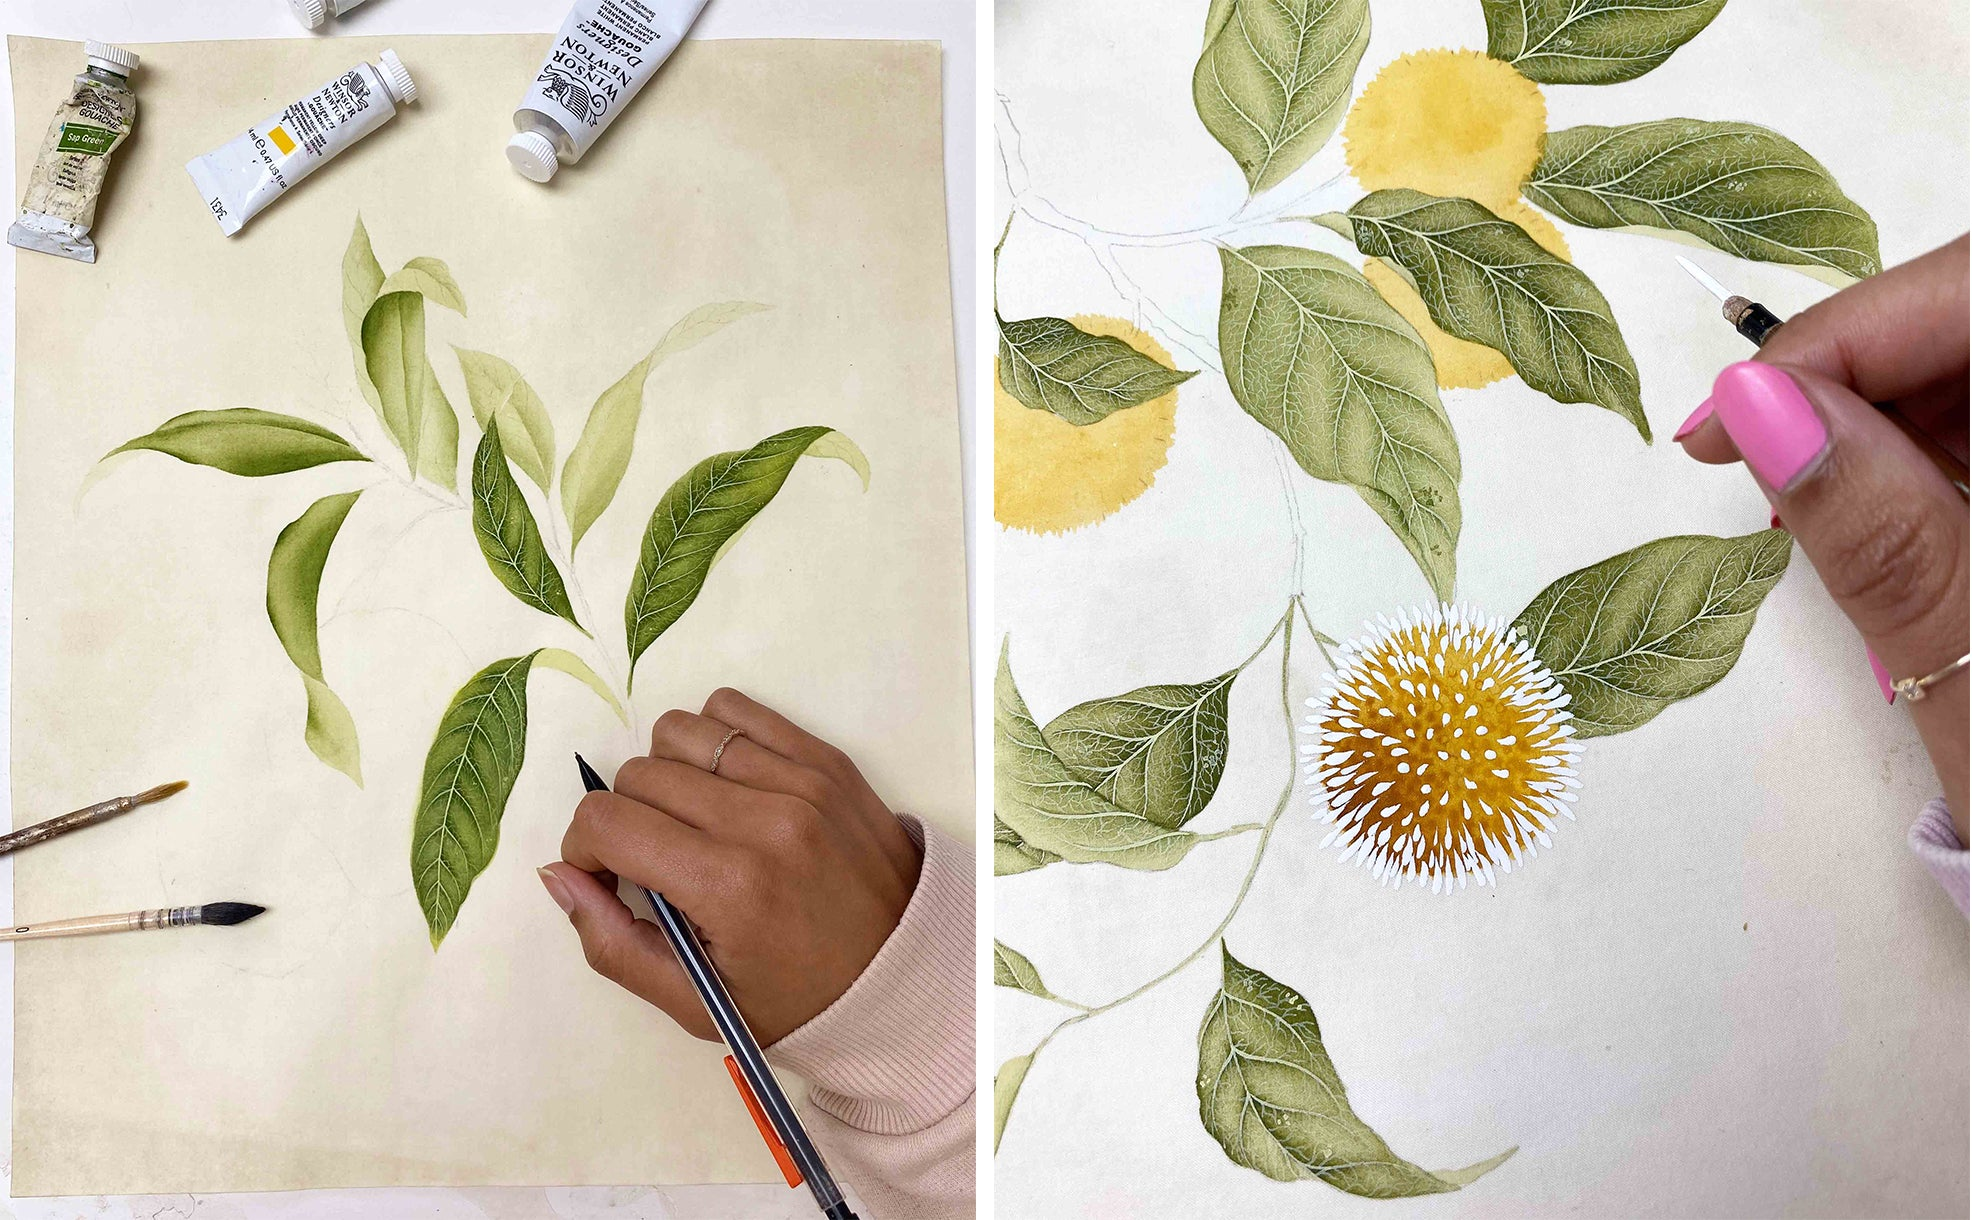 Diane Hill painting the botanical collection work in progress